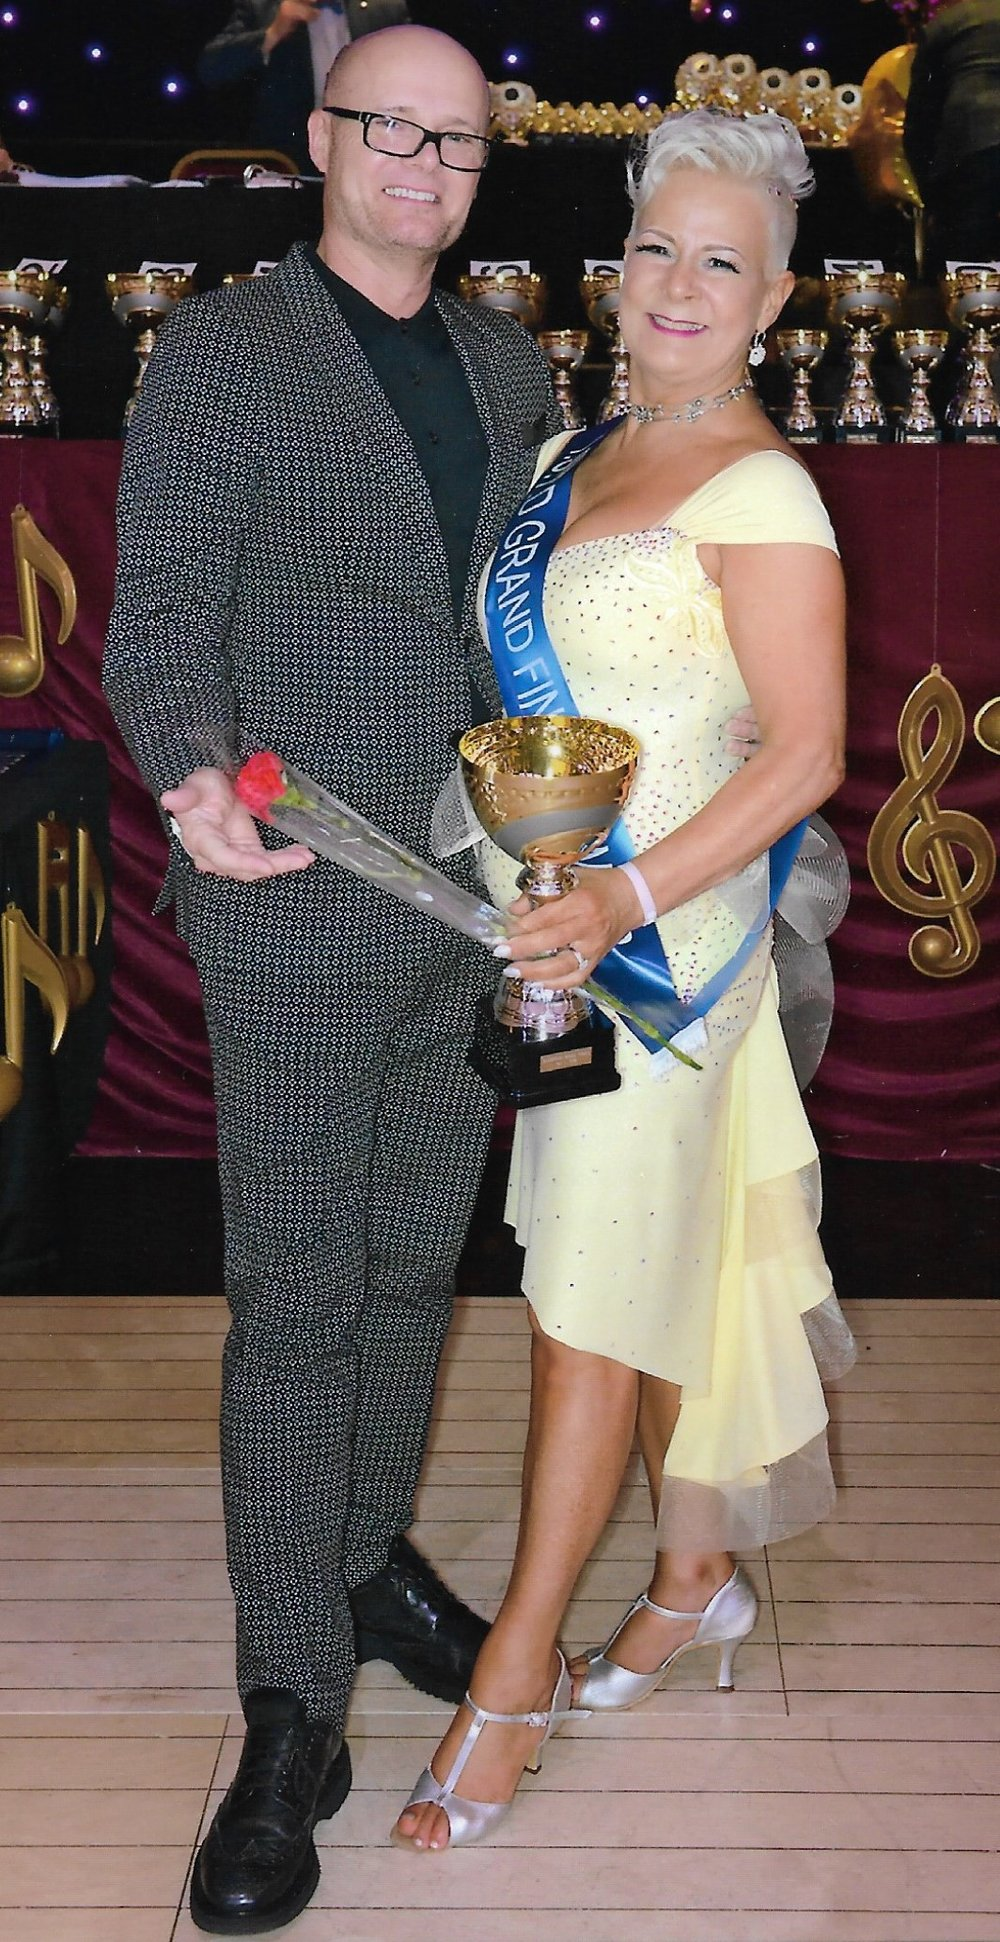 Terri Richmond doing the double!! Winner 4 years on the trot 2015, 2016, 2017 in Ballroom and now Ballroom and Latin winner 2018. 5 sashes in 4 years!